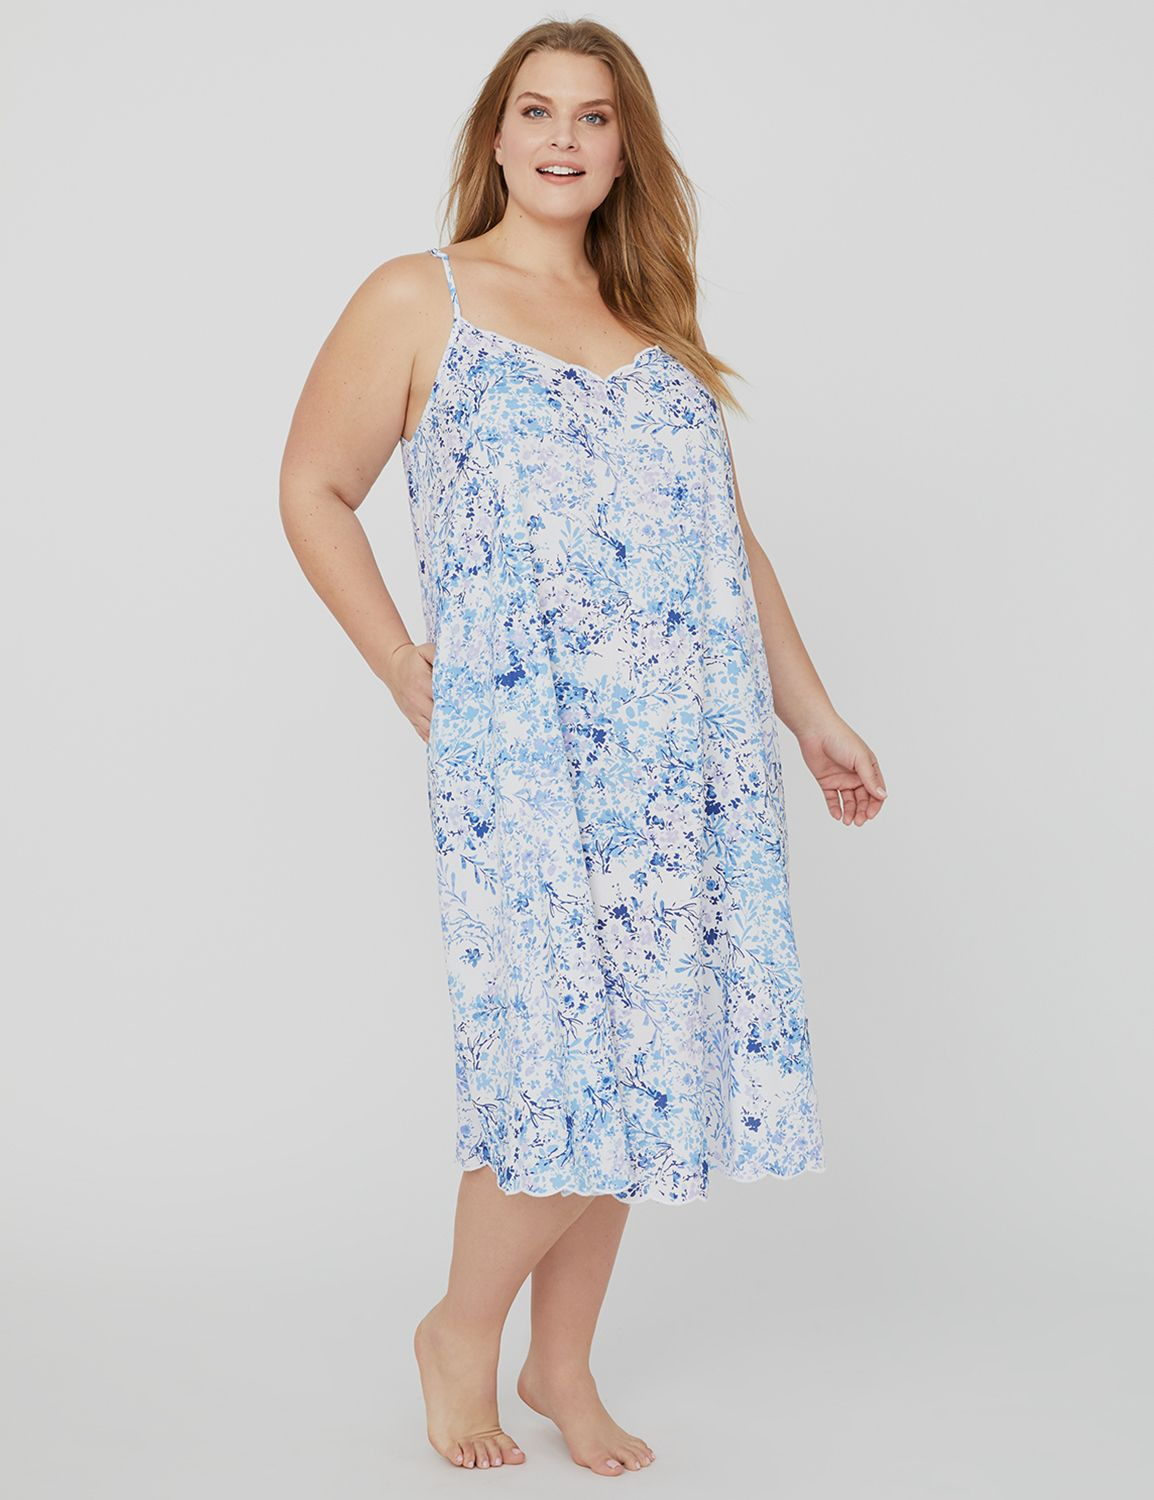 Scalloped-Edge Sleep Gown 1088493- Printed Challis Woven Midi MP-300096257